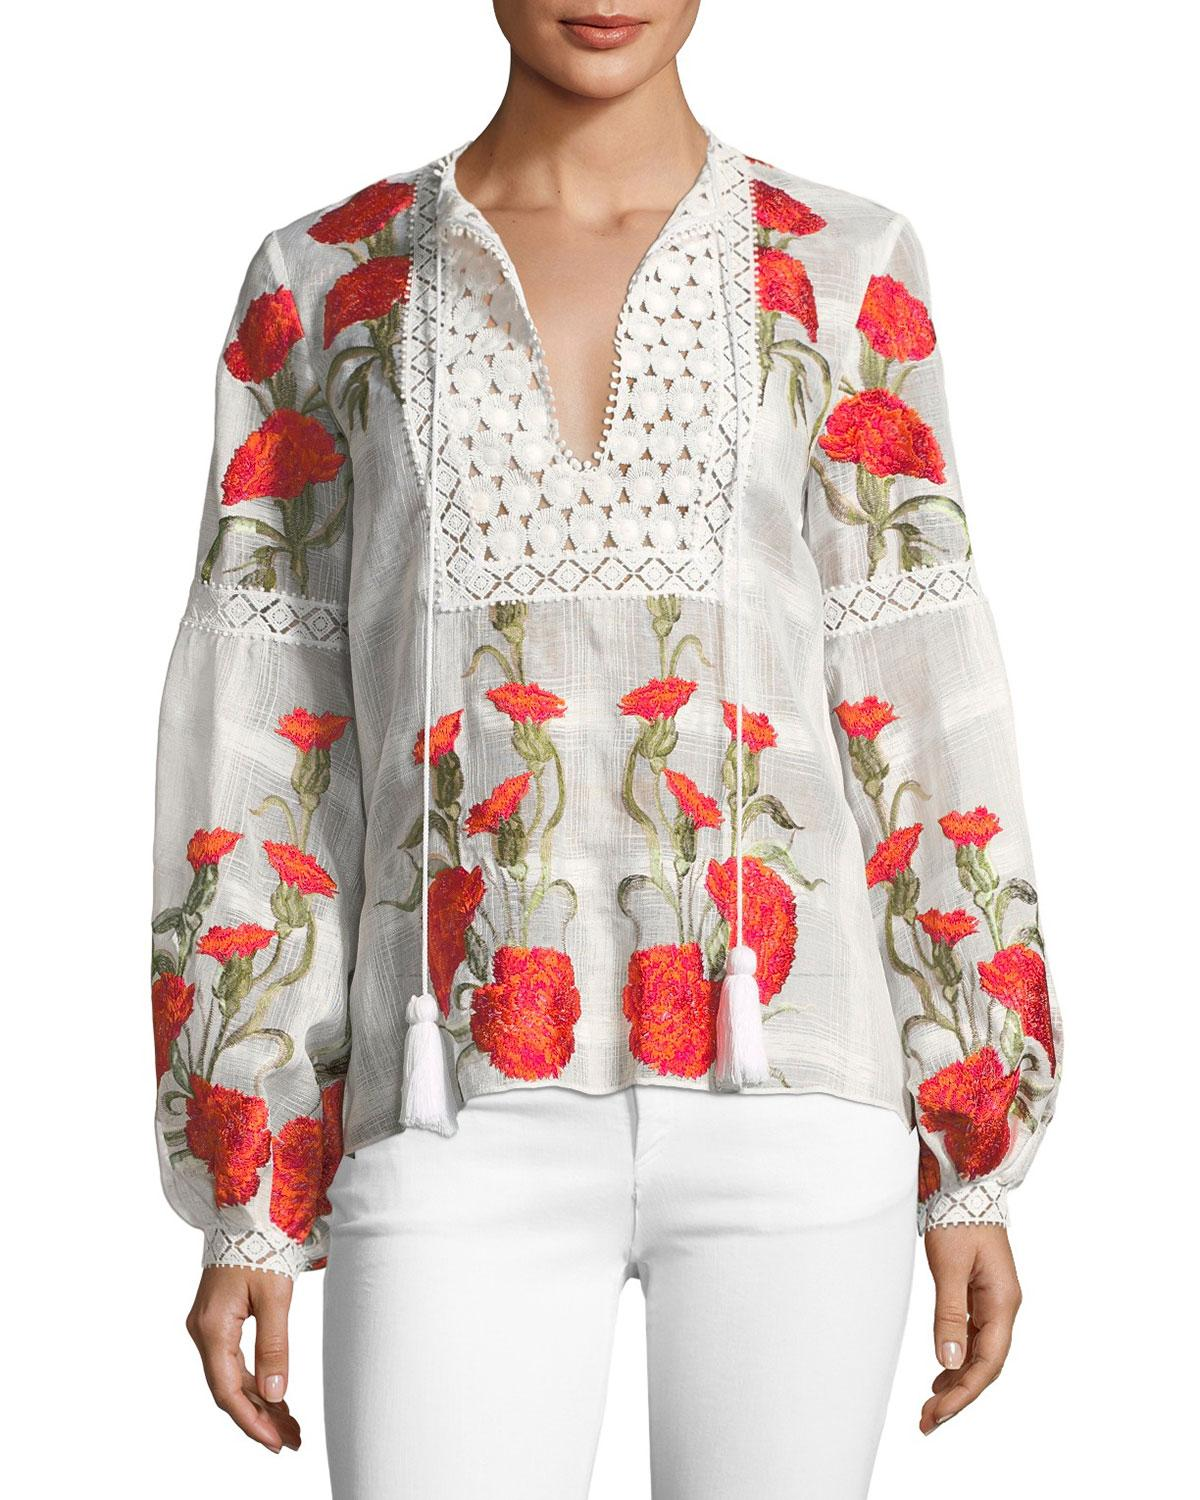 8beb4c526e4e1 Alexis Dorit Split-Neck Long-Sleeve Floral-Embroidered Top In Red ...